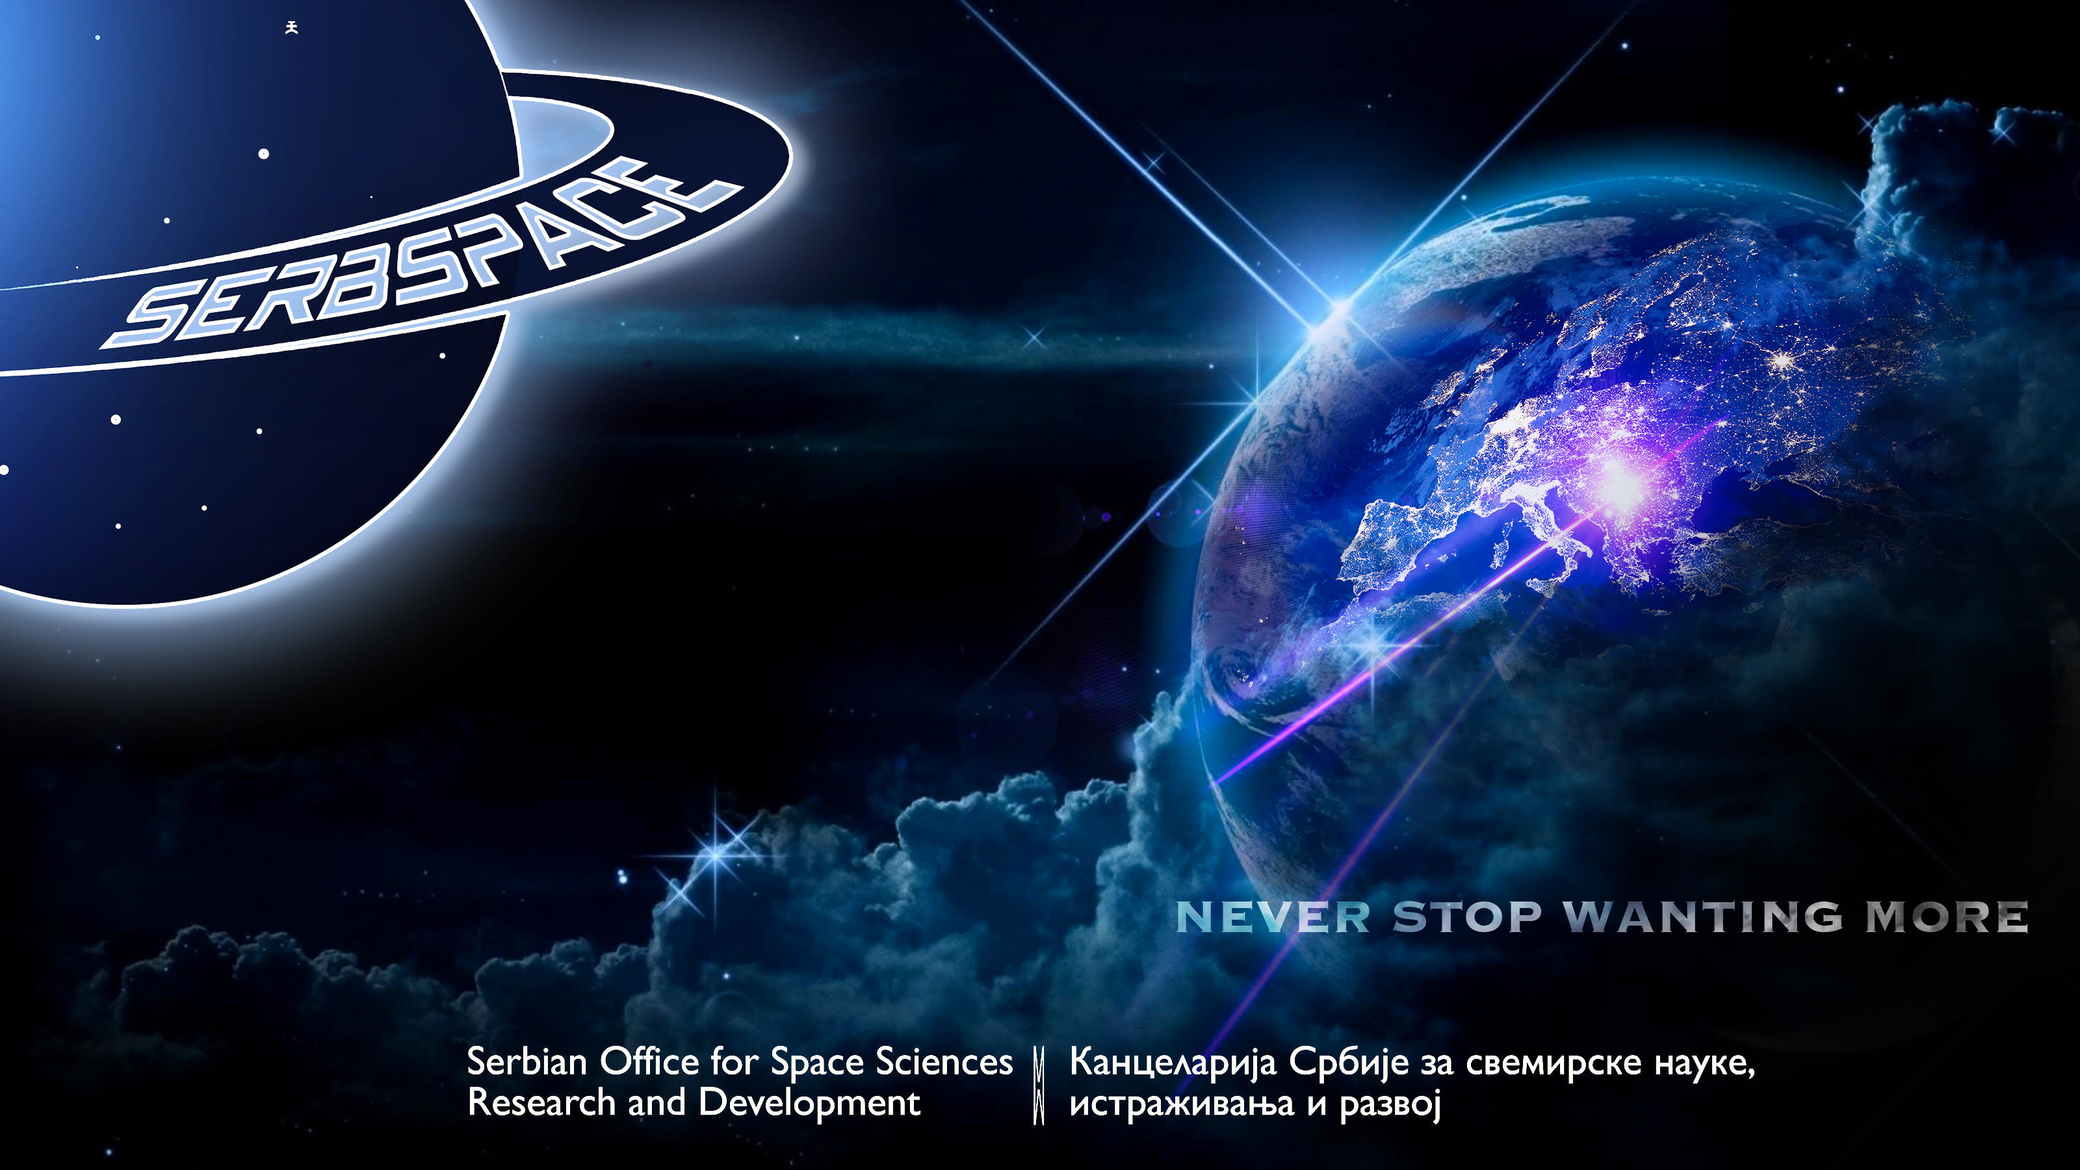 Serbia's Gateway to Space